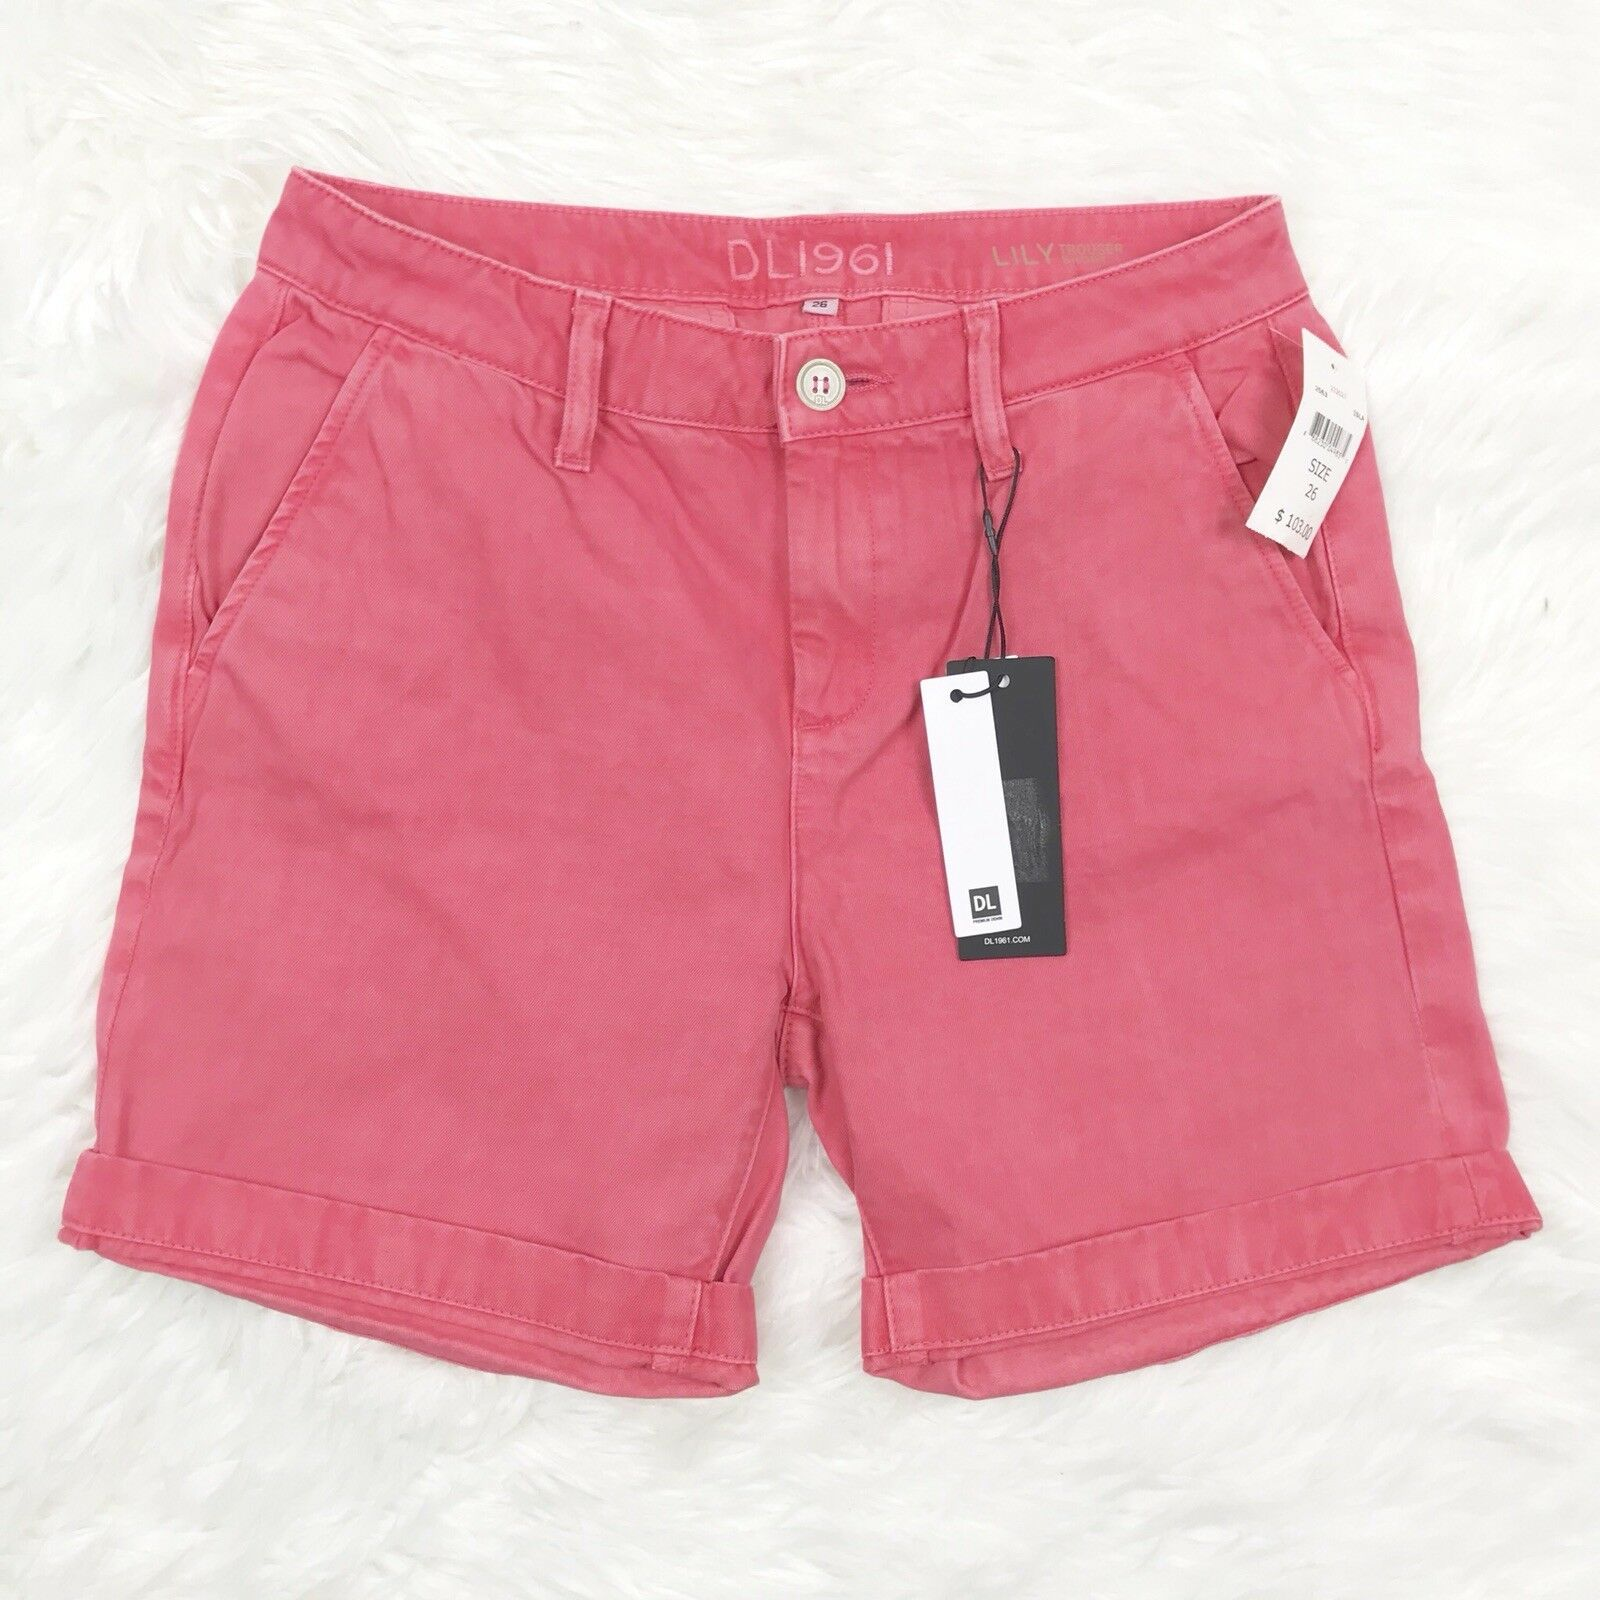 DL1961 Womens Size 26 Solid Pink Denim Jean Shorts Lily Trouser Short NWT  103